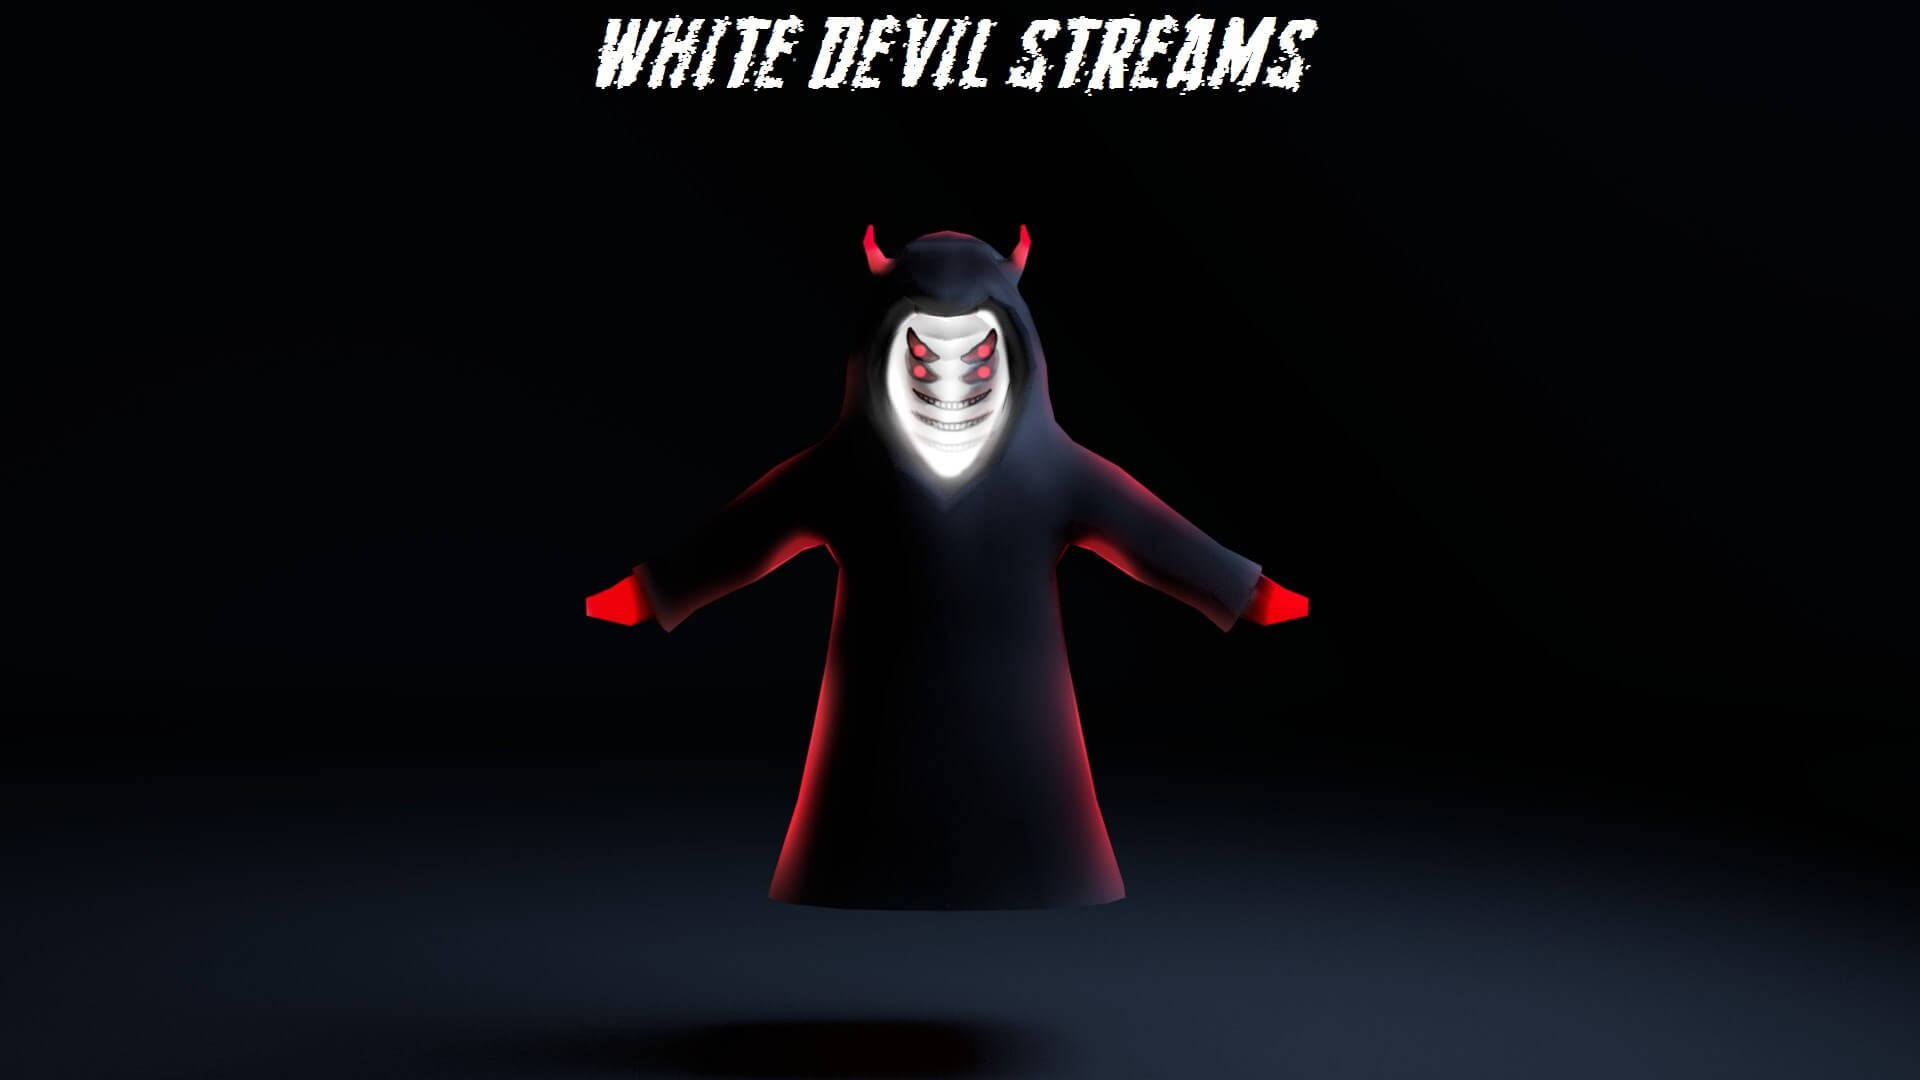 how-to-install-white-devil-streams-addon-on-kodi-19.0-matrix